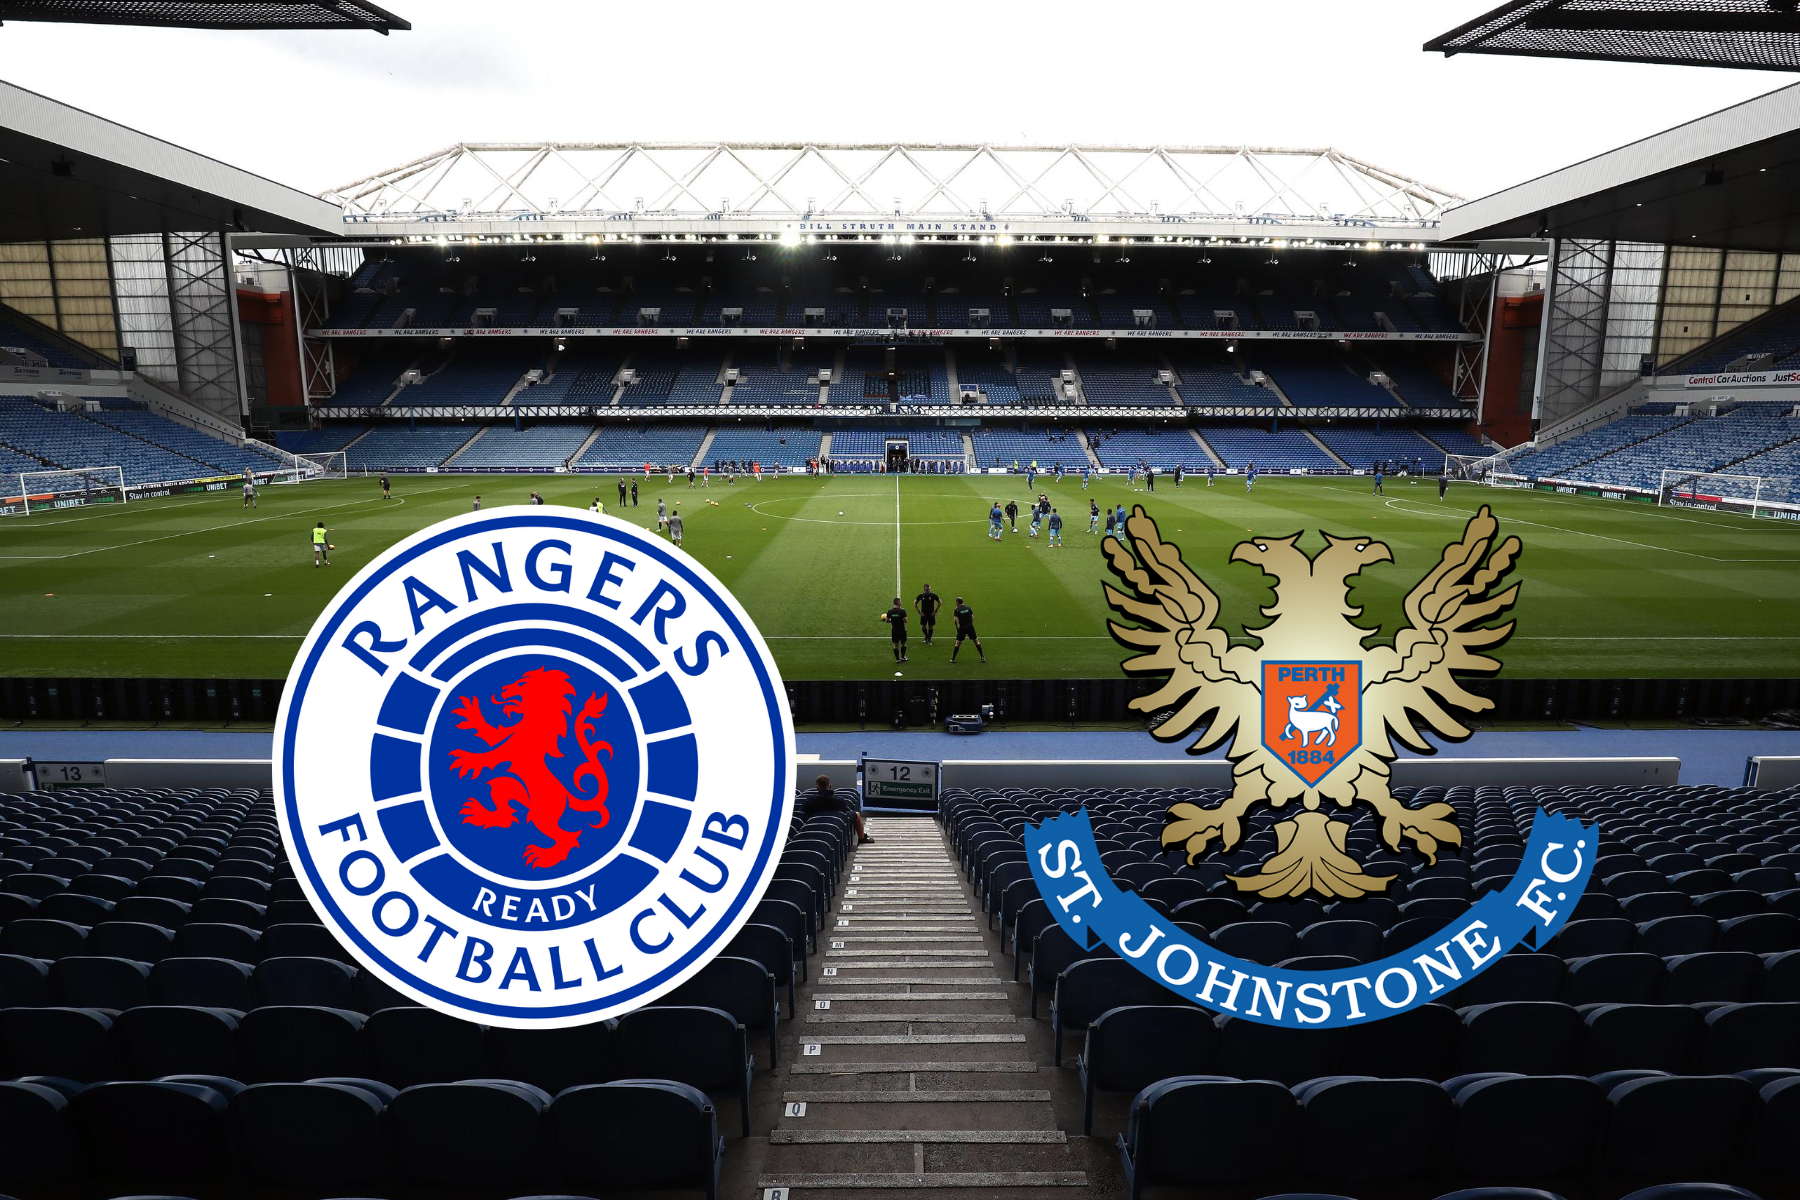 Rangers 1 St Johnstone 0 LIVE: Borna Barisic gives Steven Gerrard's side the lead at Ibrox